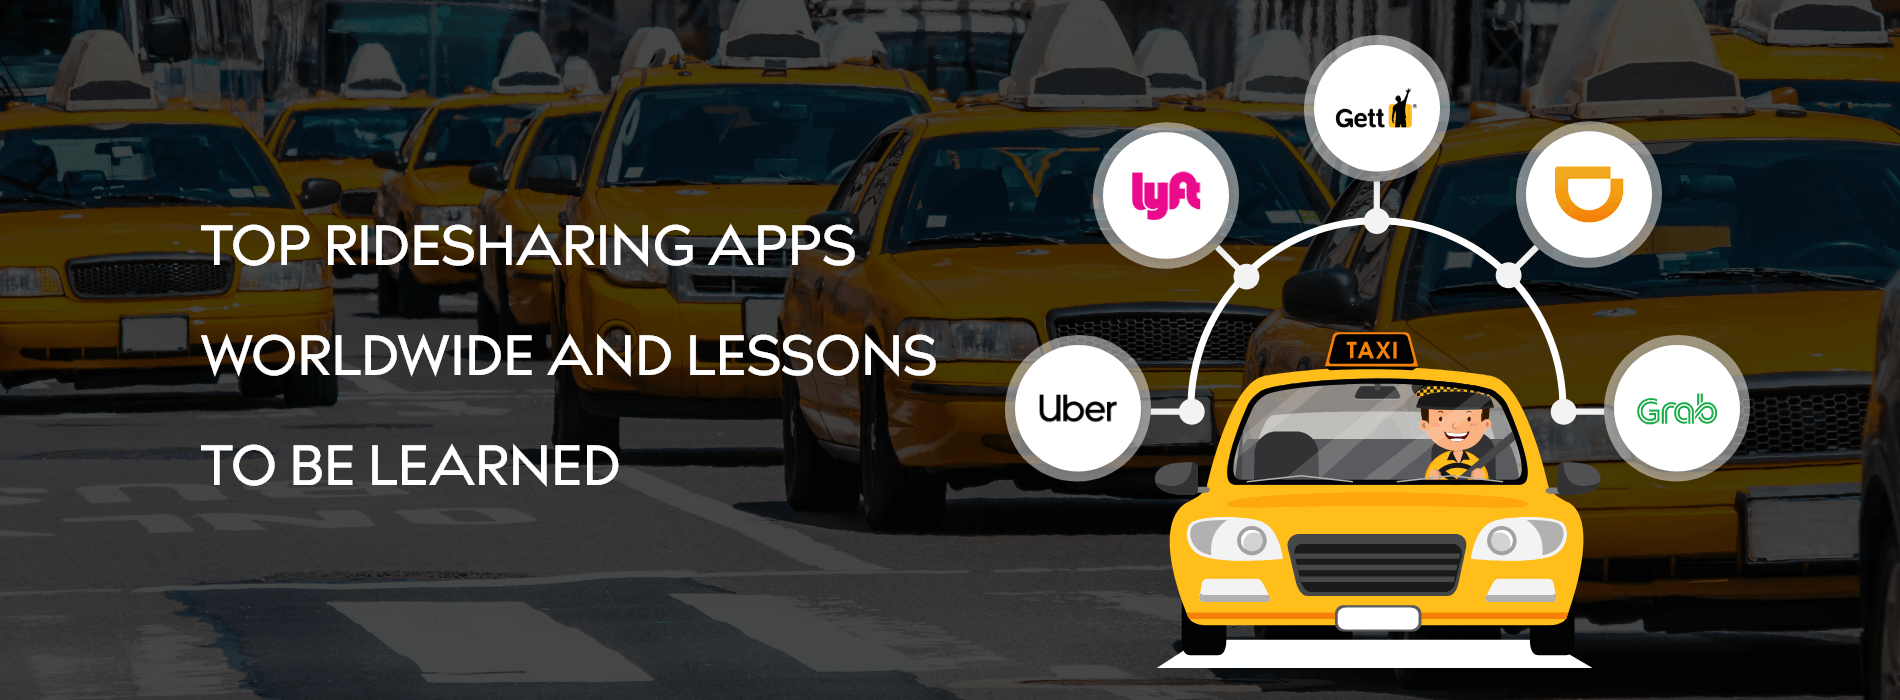 Top Ridesharing Apps Worldwide and Lessons to Be Learned